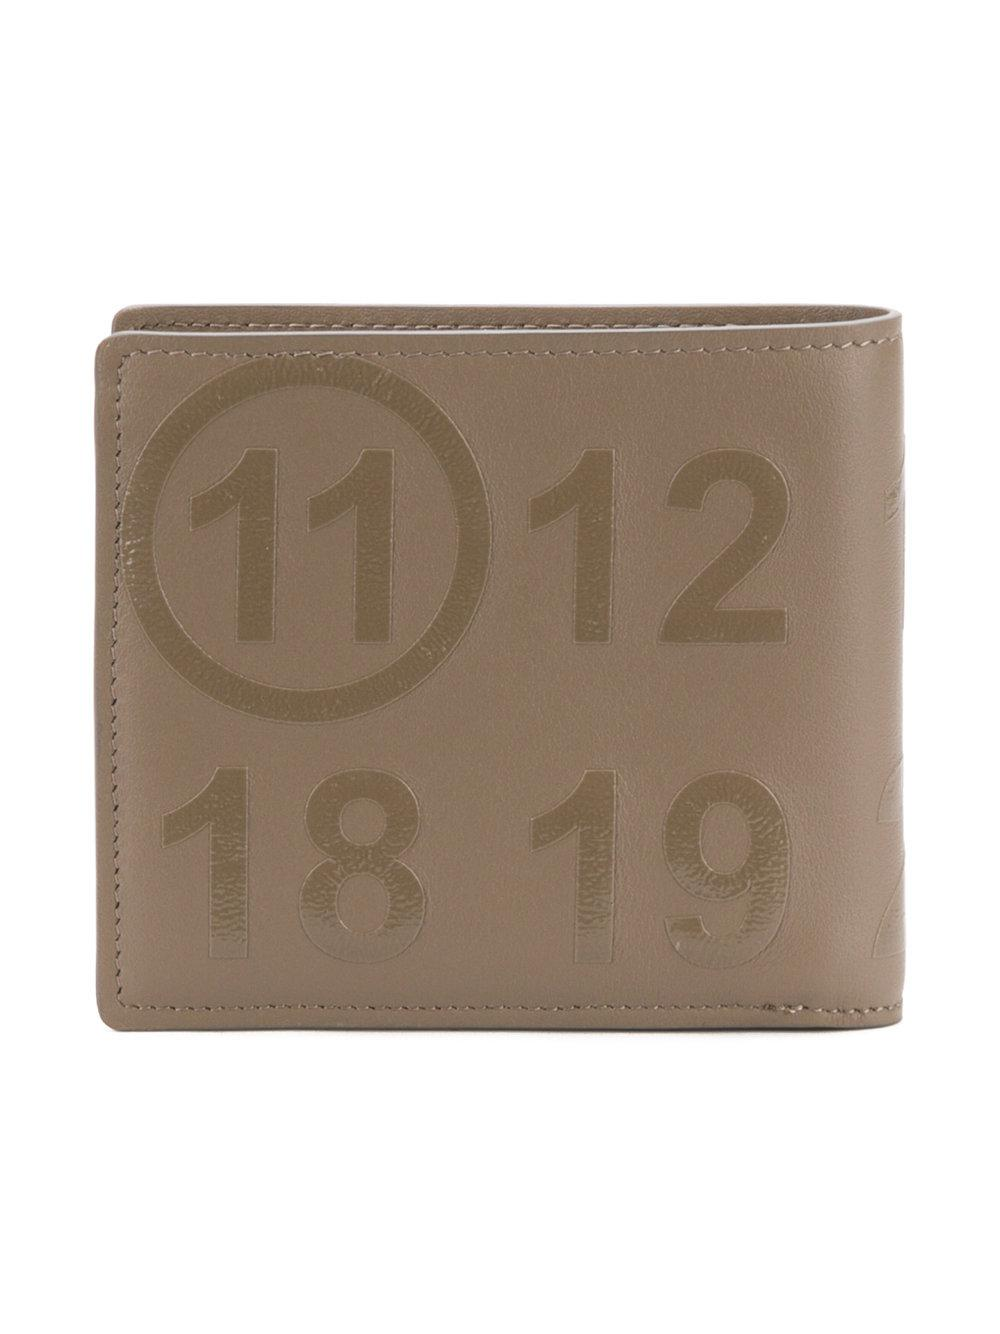 Maison Margiela Printed Digits Wallets in Natural for Men - Lyst f45e948d27